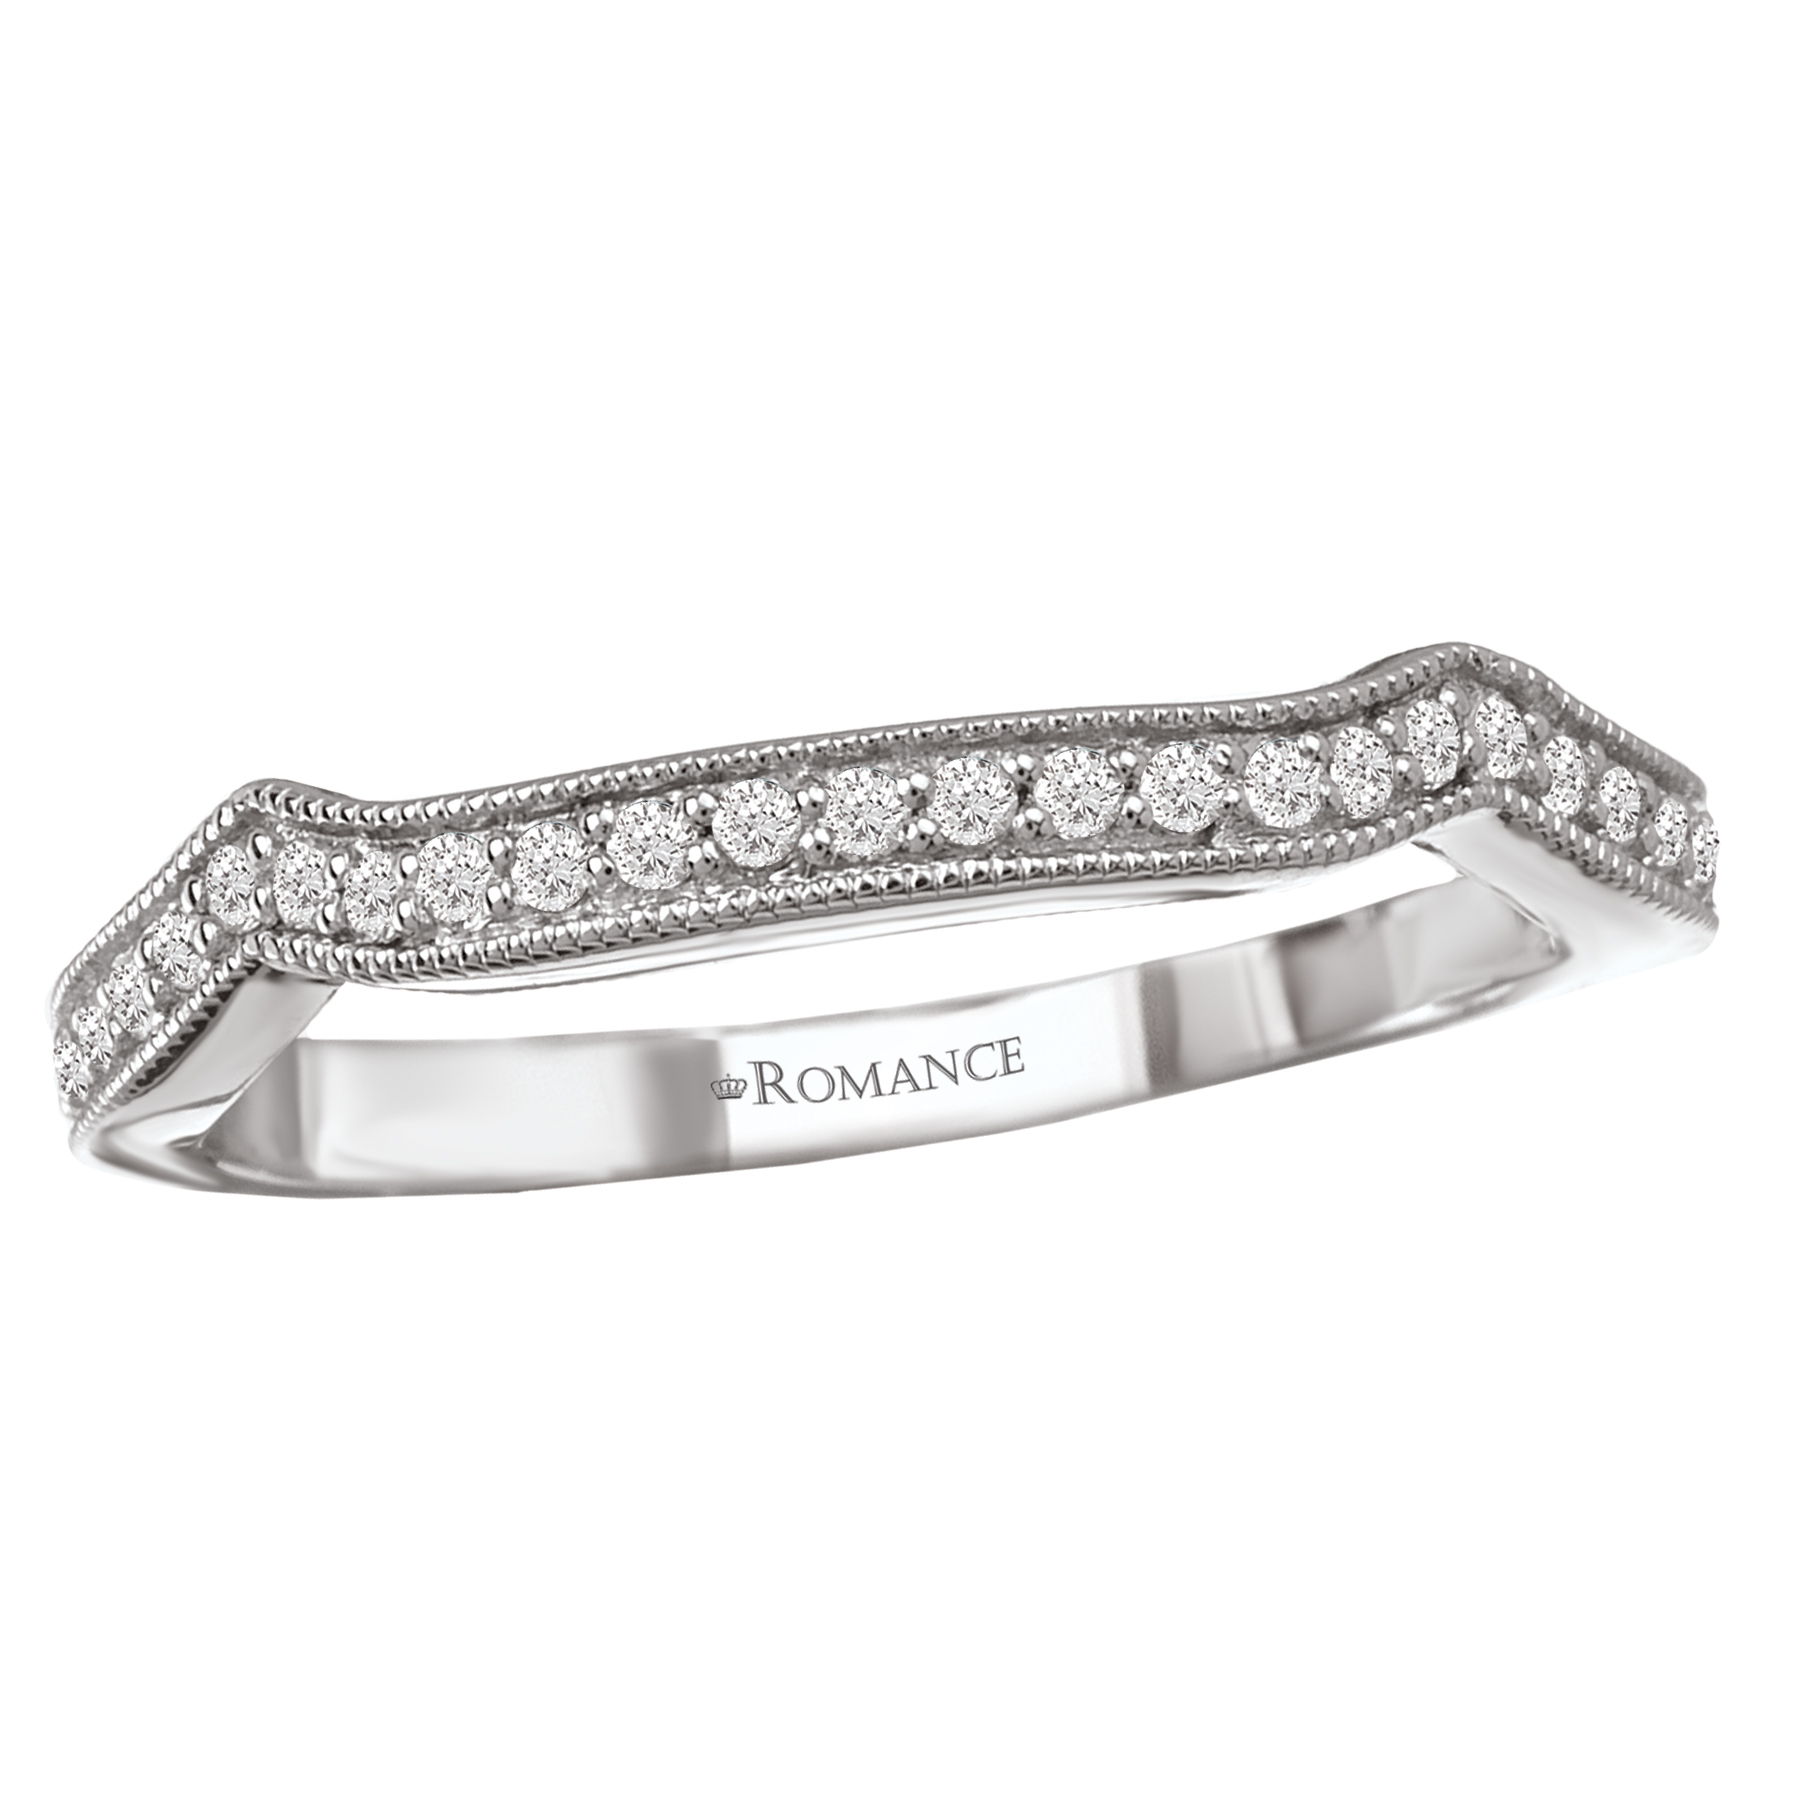 Romance Wedding Bands 117479-W product image